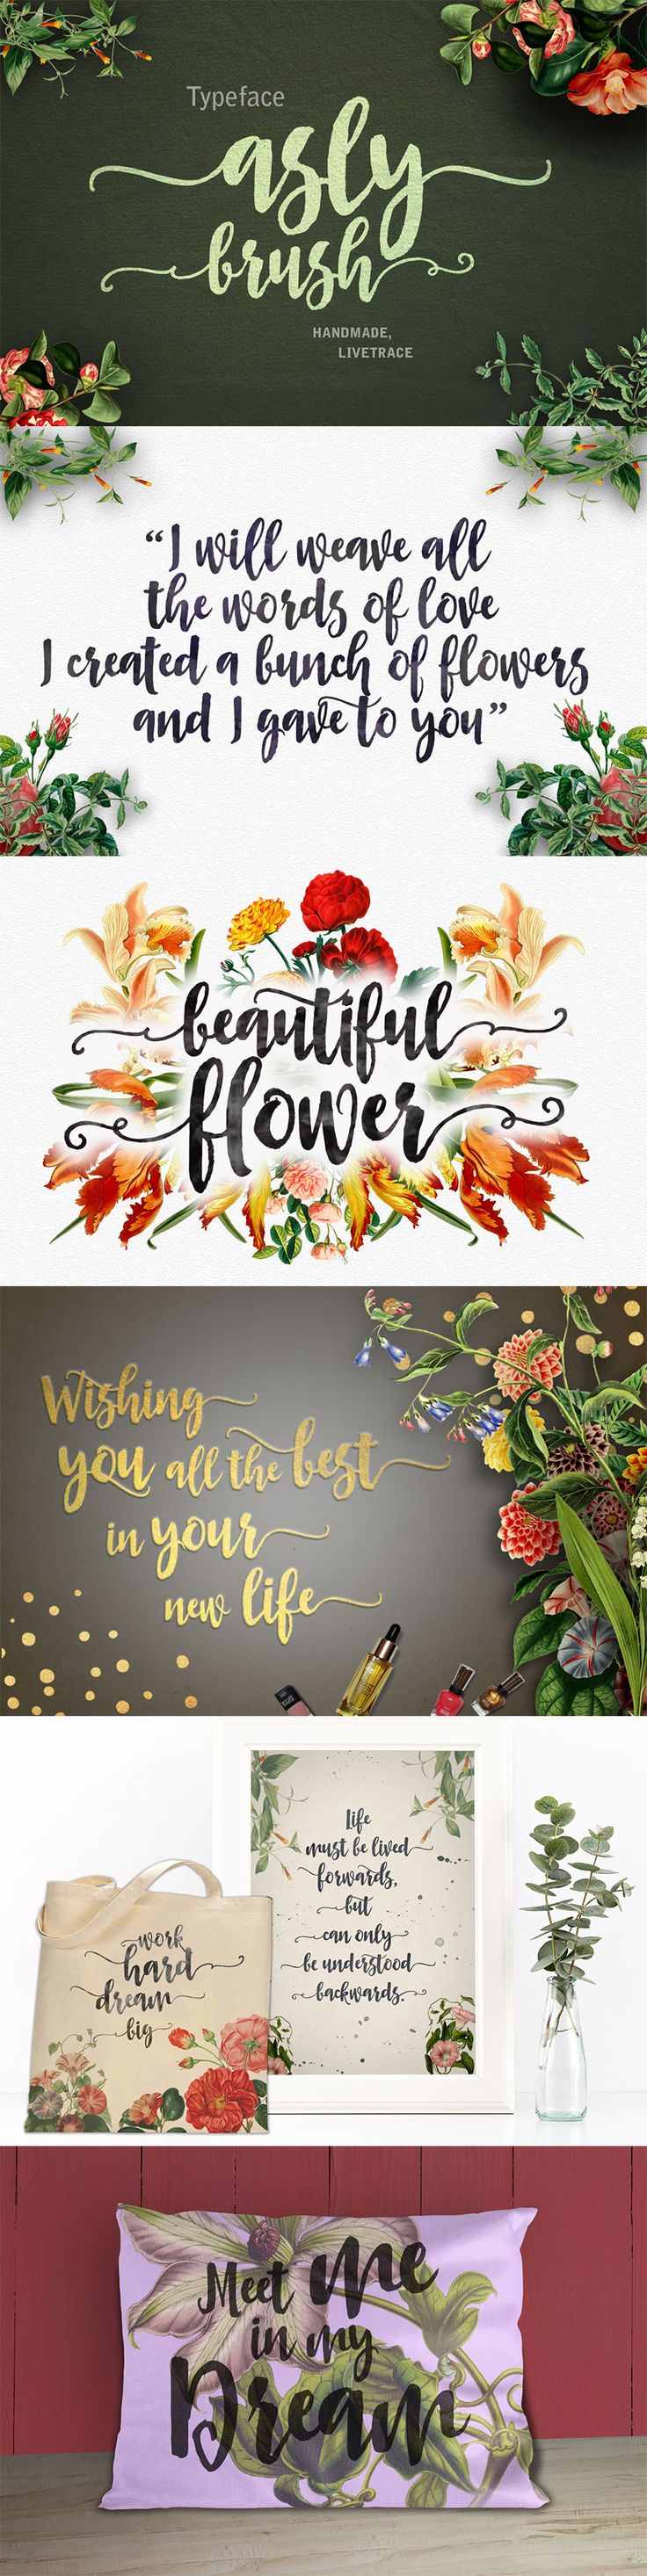 cursive fonts for wedding cards%0A    TopRanked Fonts for Creatives  Only       MyDesignDeals